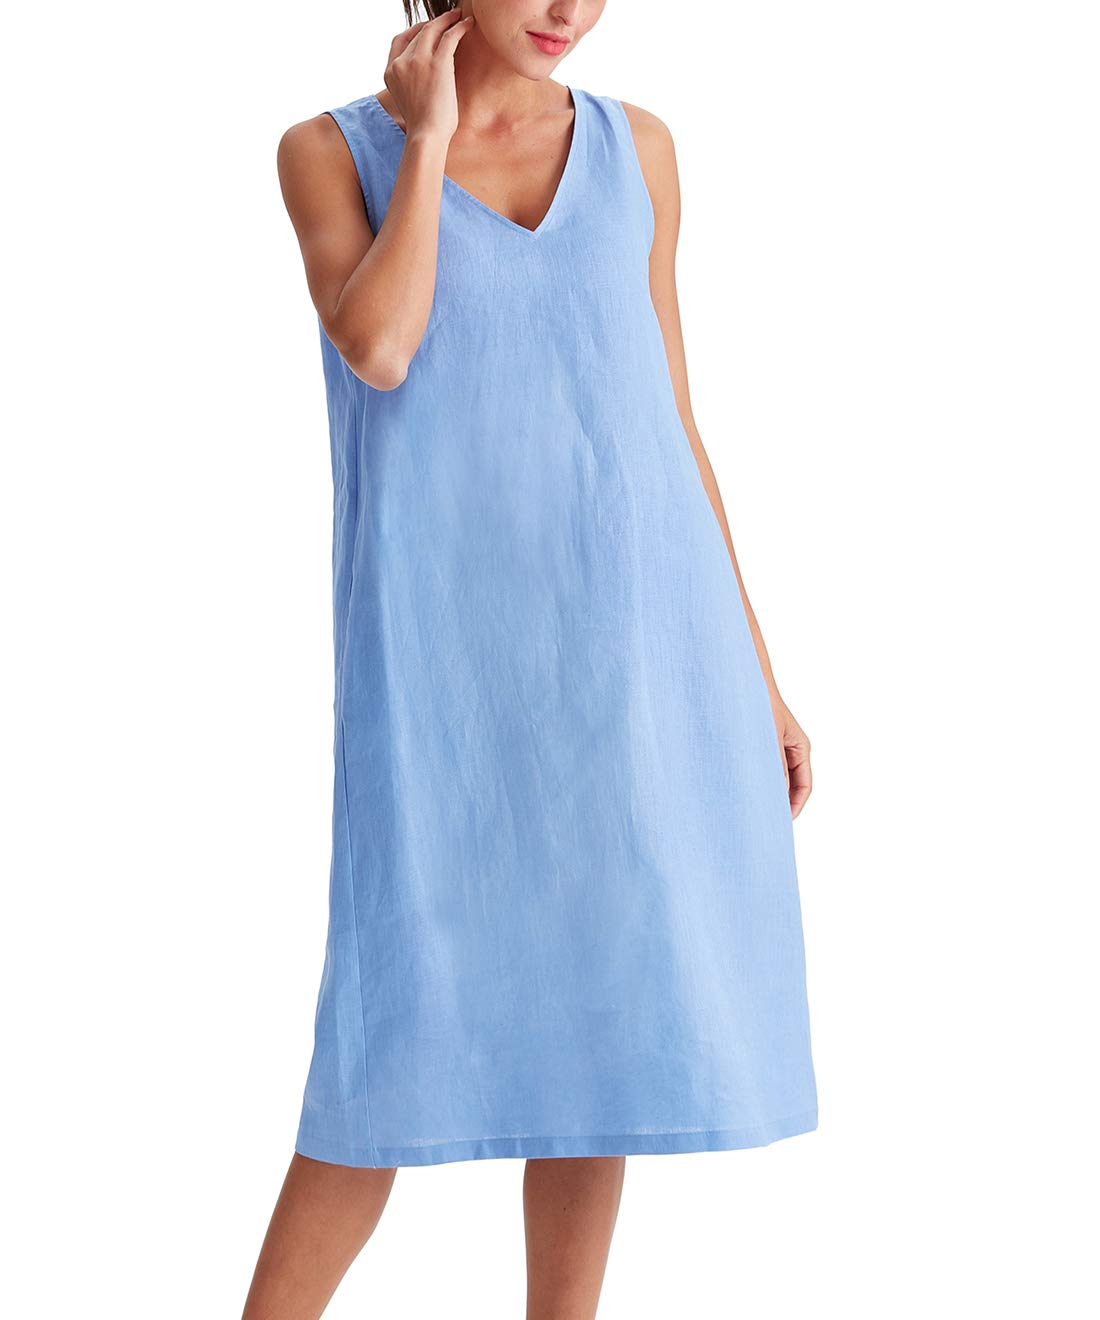 Available at Amazon: Amazhiyu Women's Linen Sleeveless V -Neck Midi Dresses with Pockets Solid Summer Casual Dress